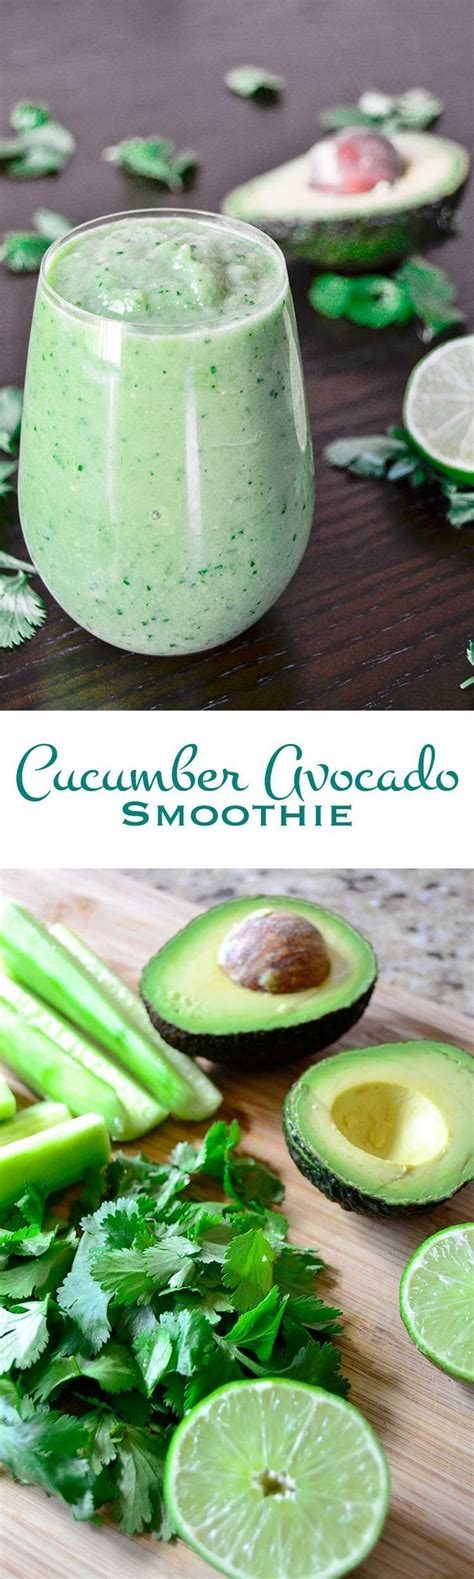 avocado smoothies for diabetics 35 avocado smoothies for diabetics easy gluten free low cholesterol whole foods blender recipes of weight loss transformation volume 1 books cucumber avocado smoothie recipe health cilantro and